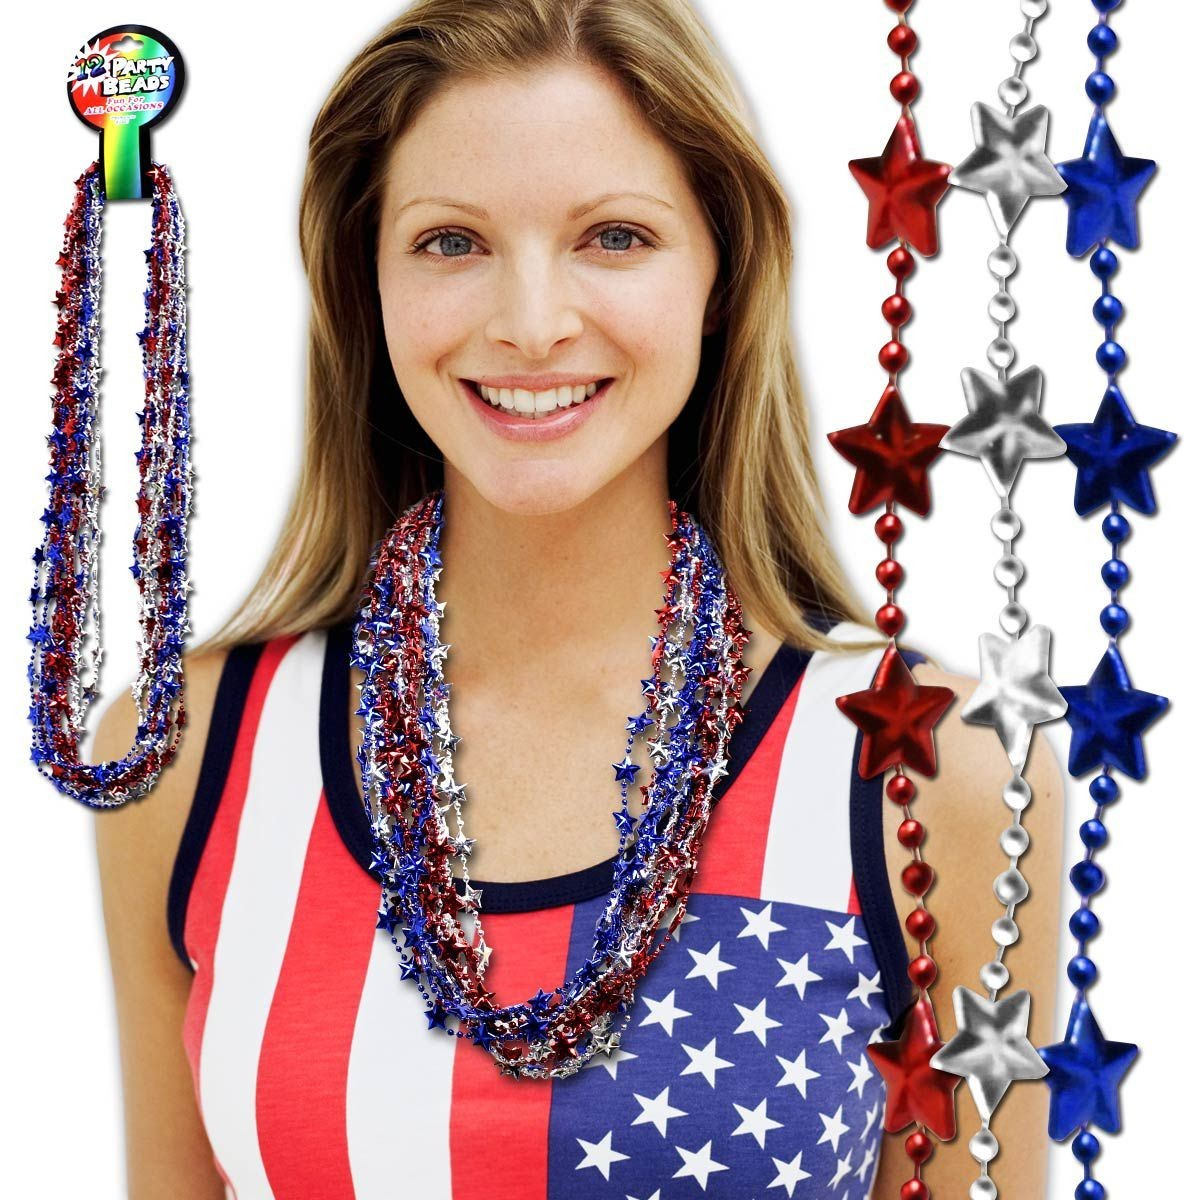 Red, Silver, Blue Star Beads